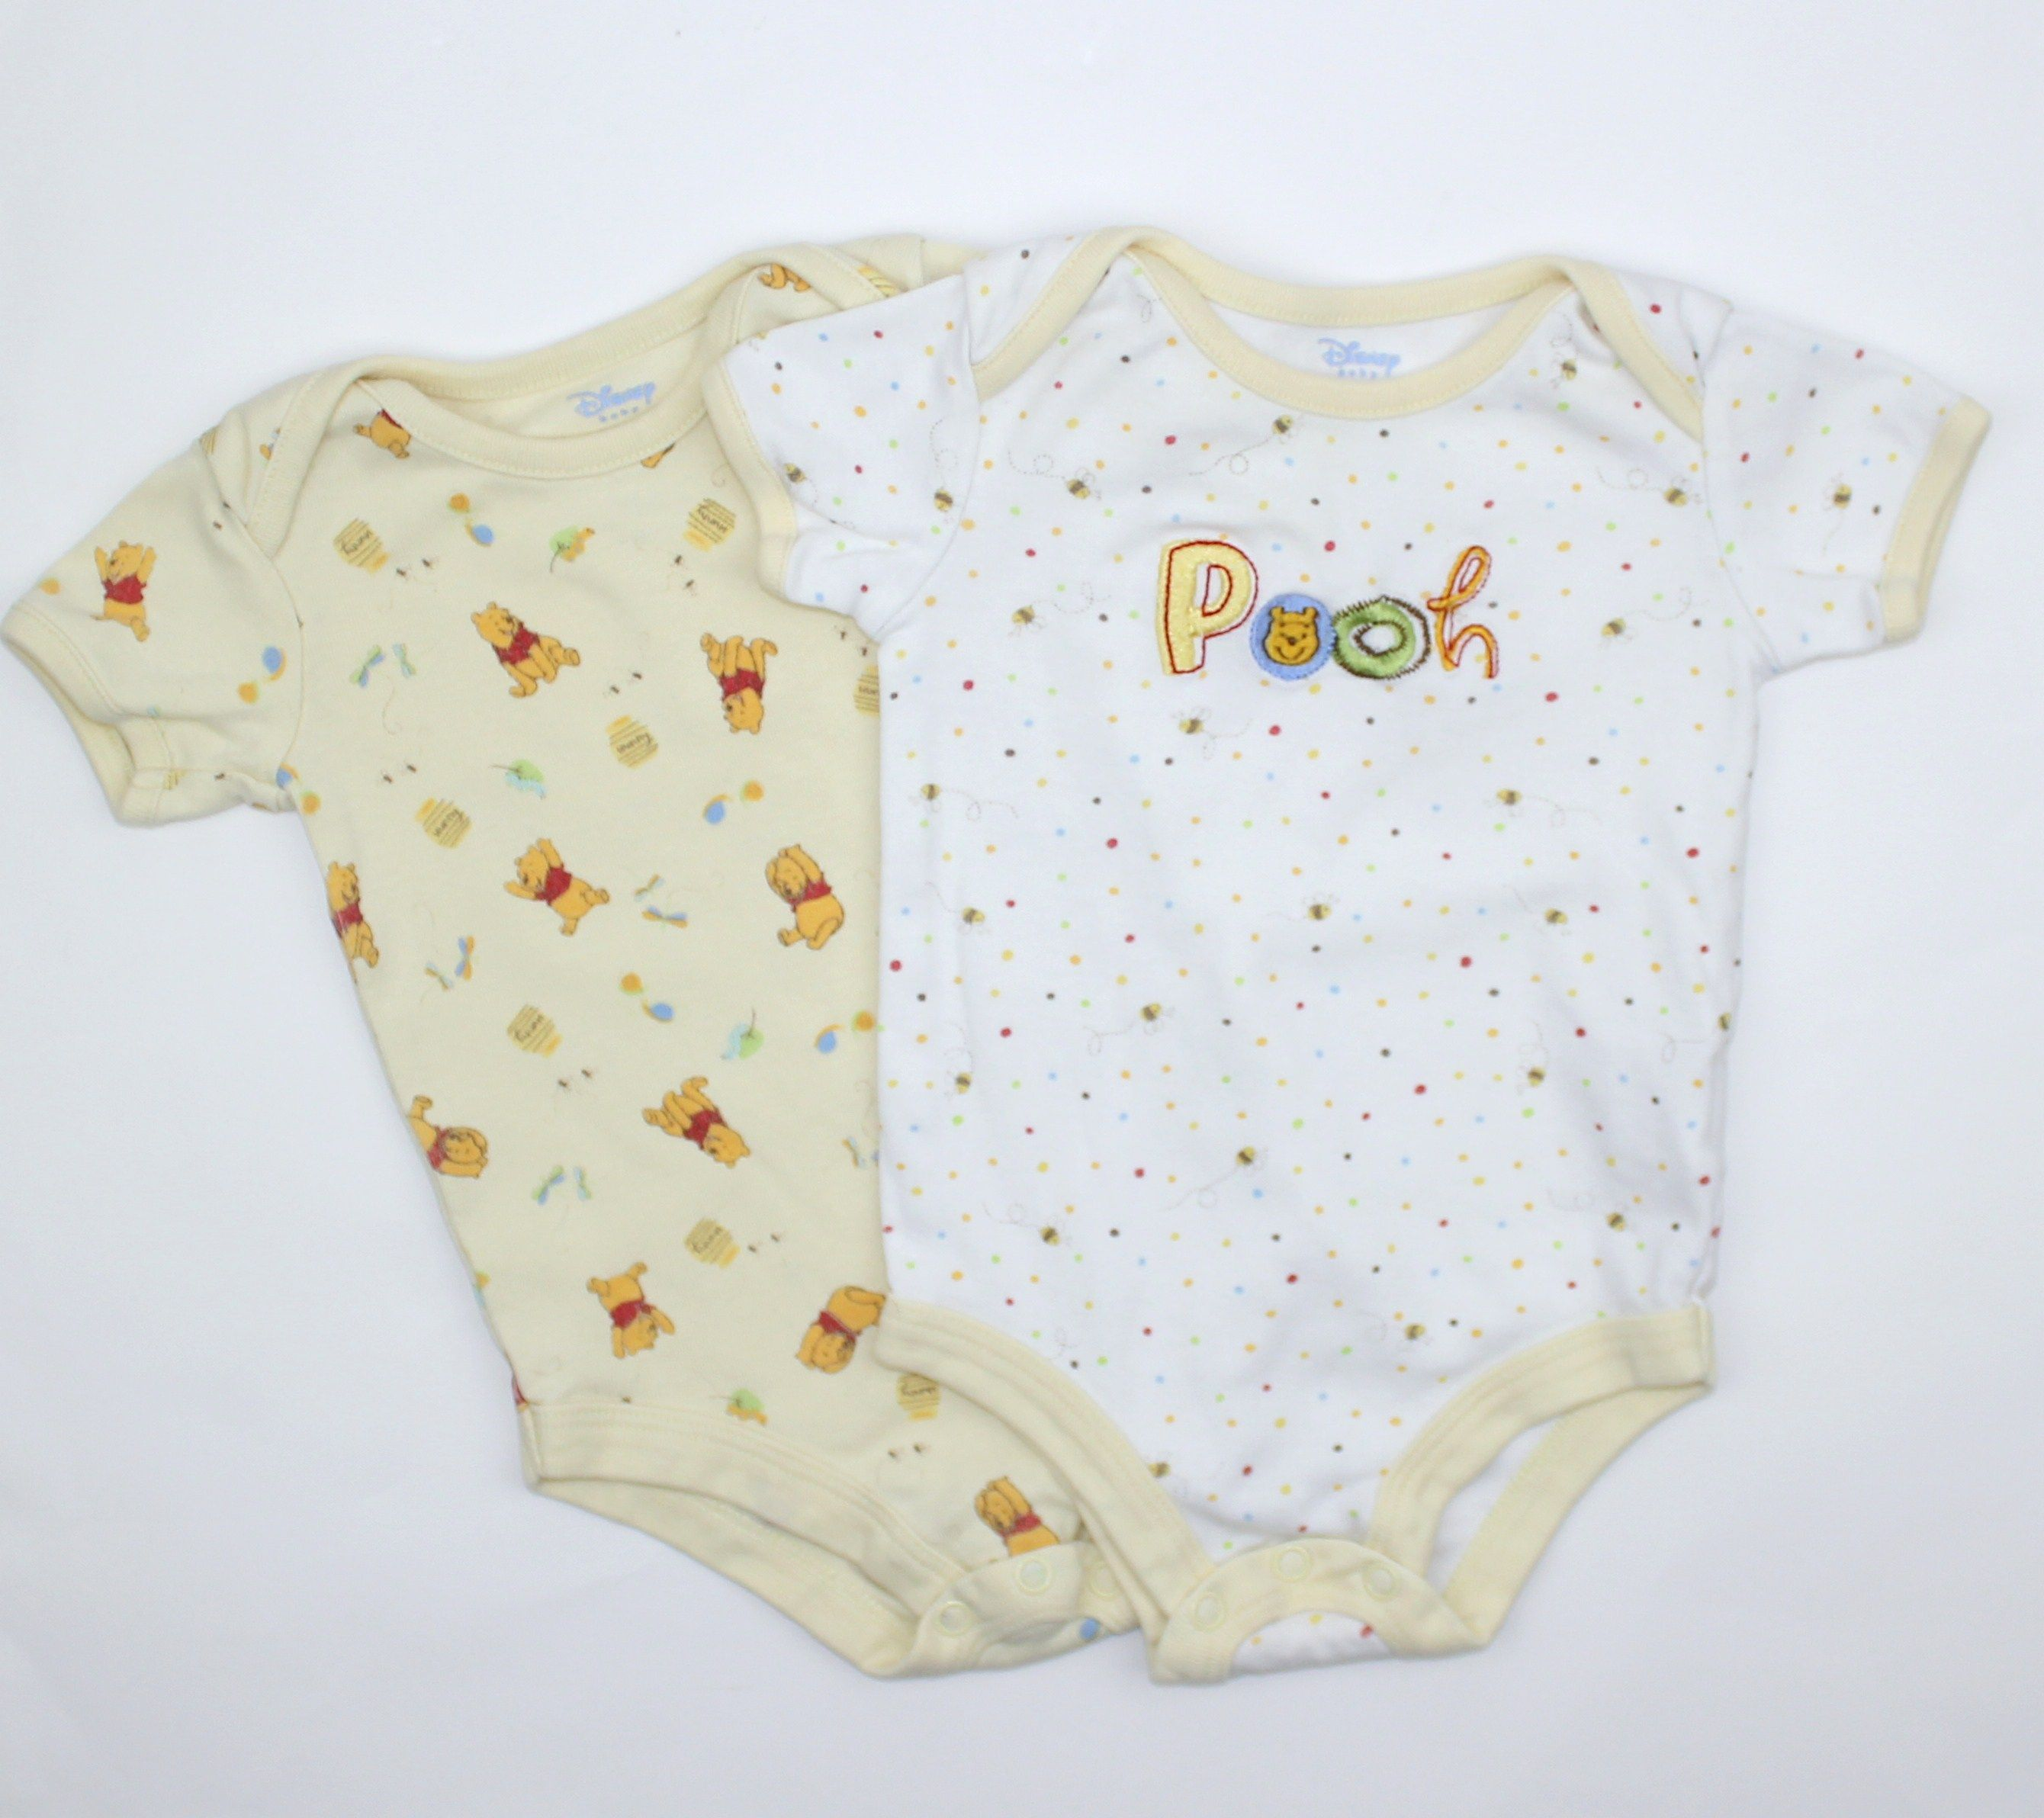 Cute Disney Baby esies 2 with Winnie the Pooh in Size 0 3 Months